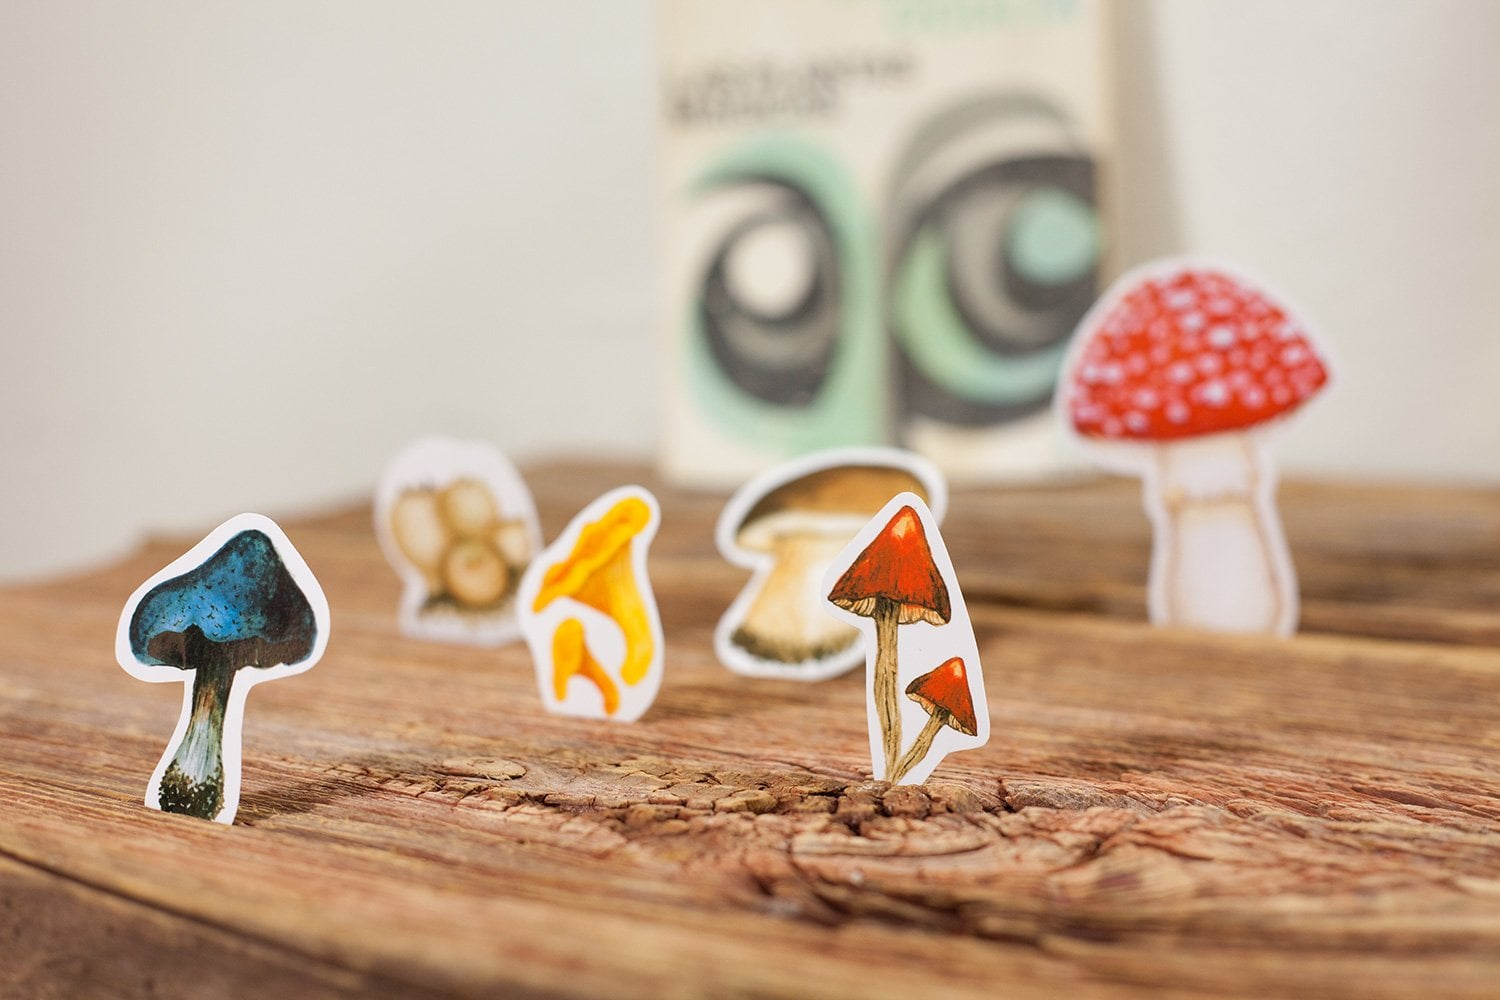 mushroom sticker set including 6 different autumn mushrooms standing in a table